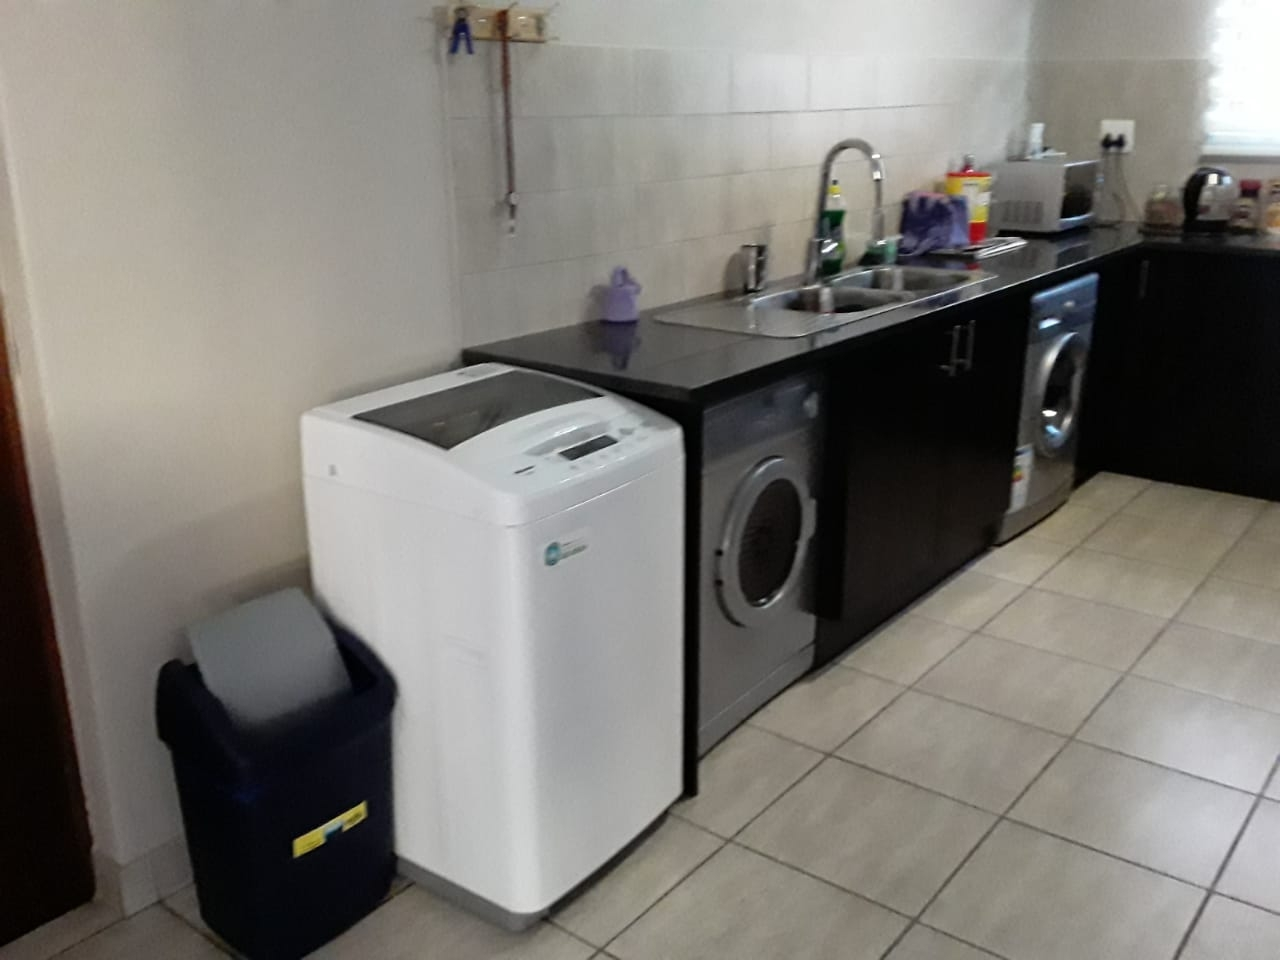 Space for undercounter appliances